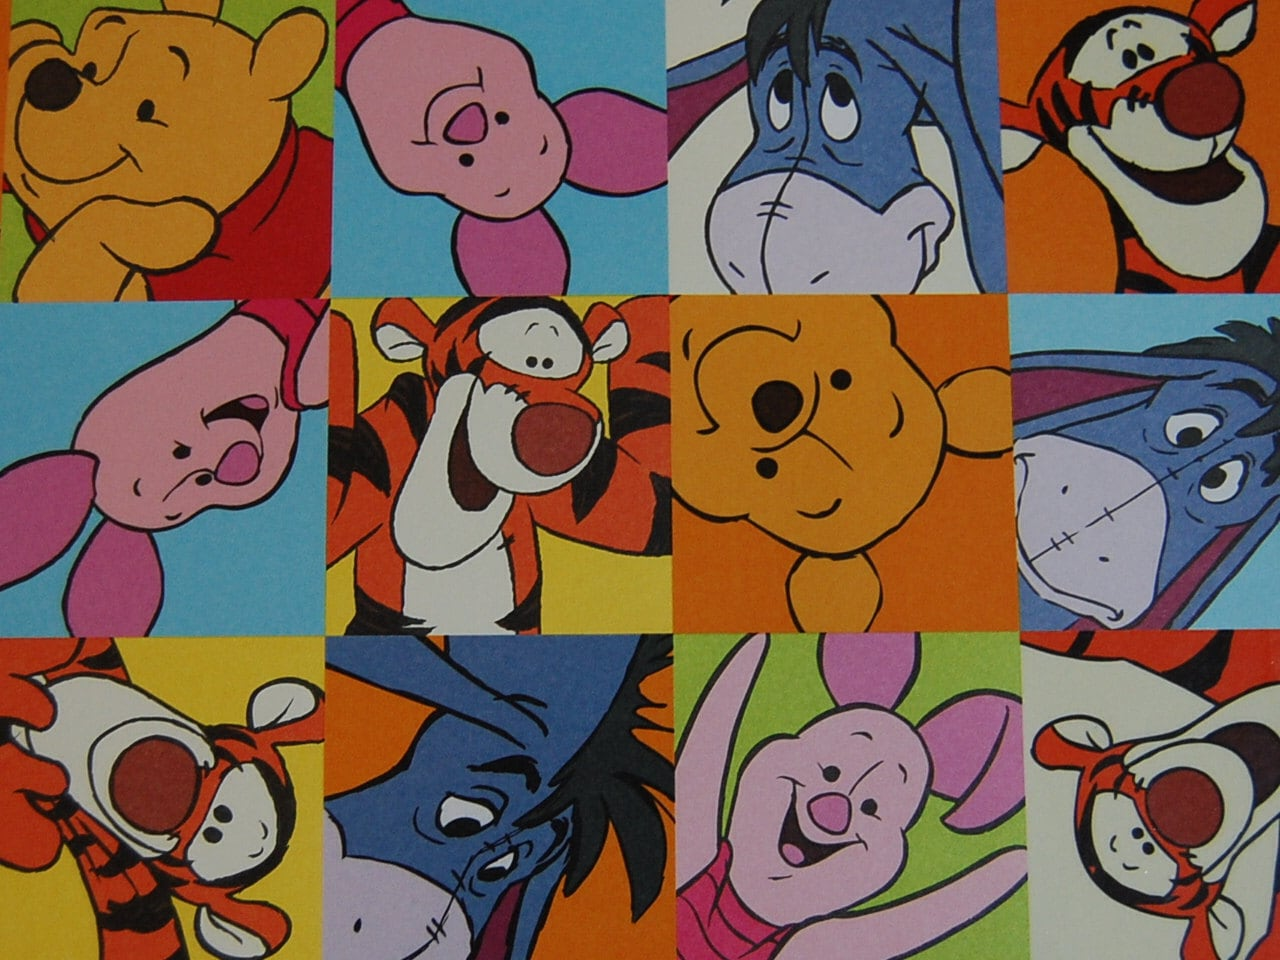 essay on winnie the pooh and friends Abstract this paper discusses how the book the tao of pooh by benjamin hoff relates the concept of taoism to the characters from the winnie the.